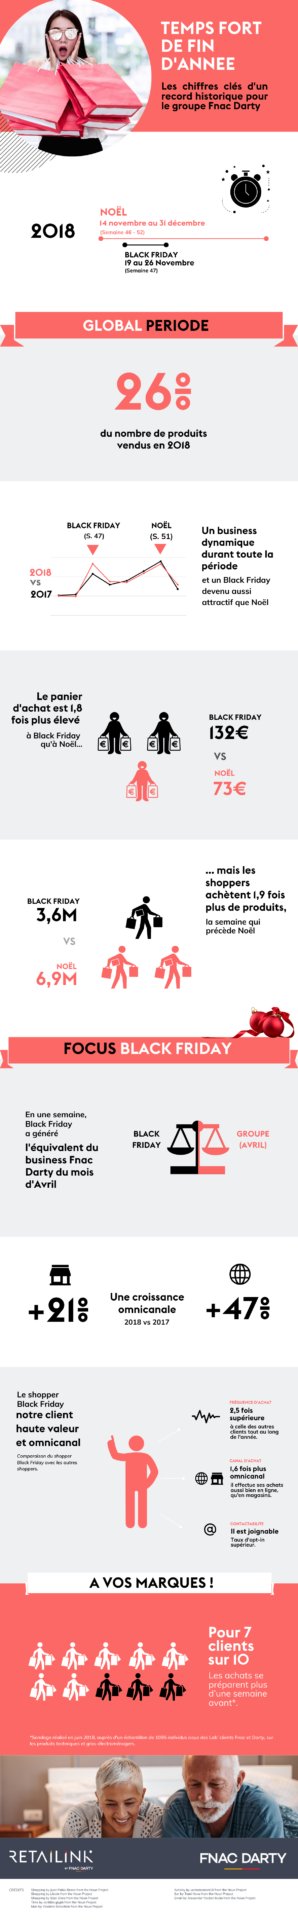 Retailink Fnac Darty Infographie Black Friday Noel